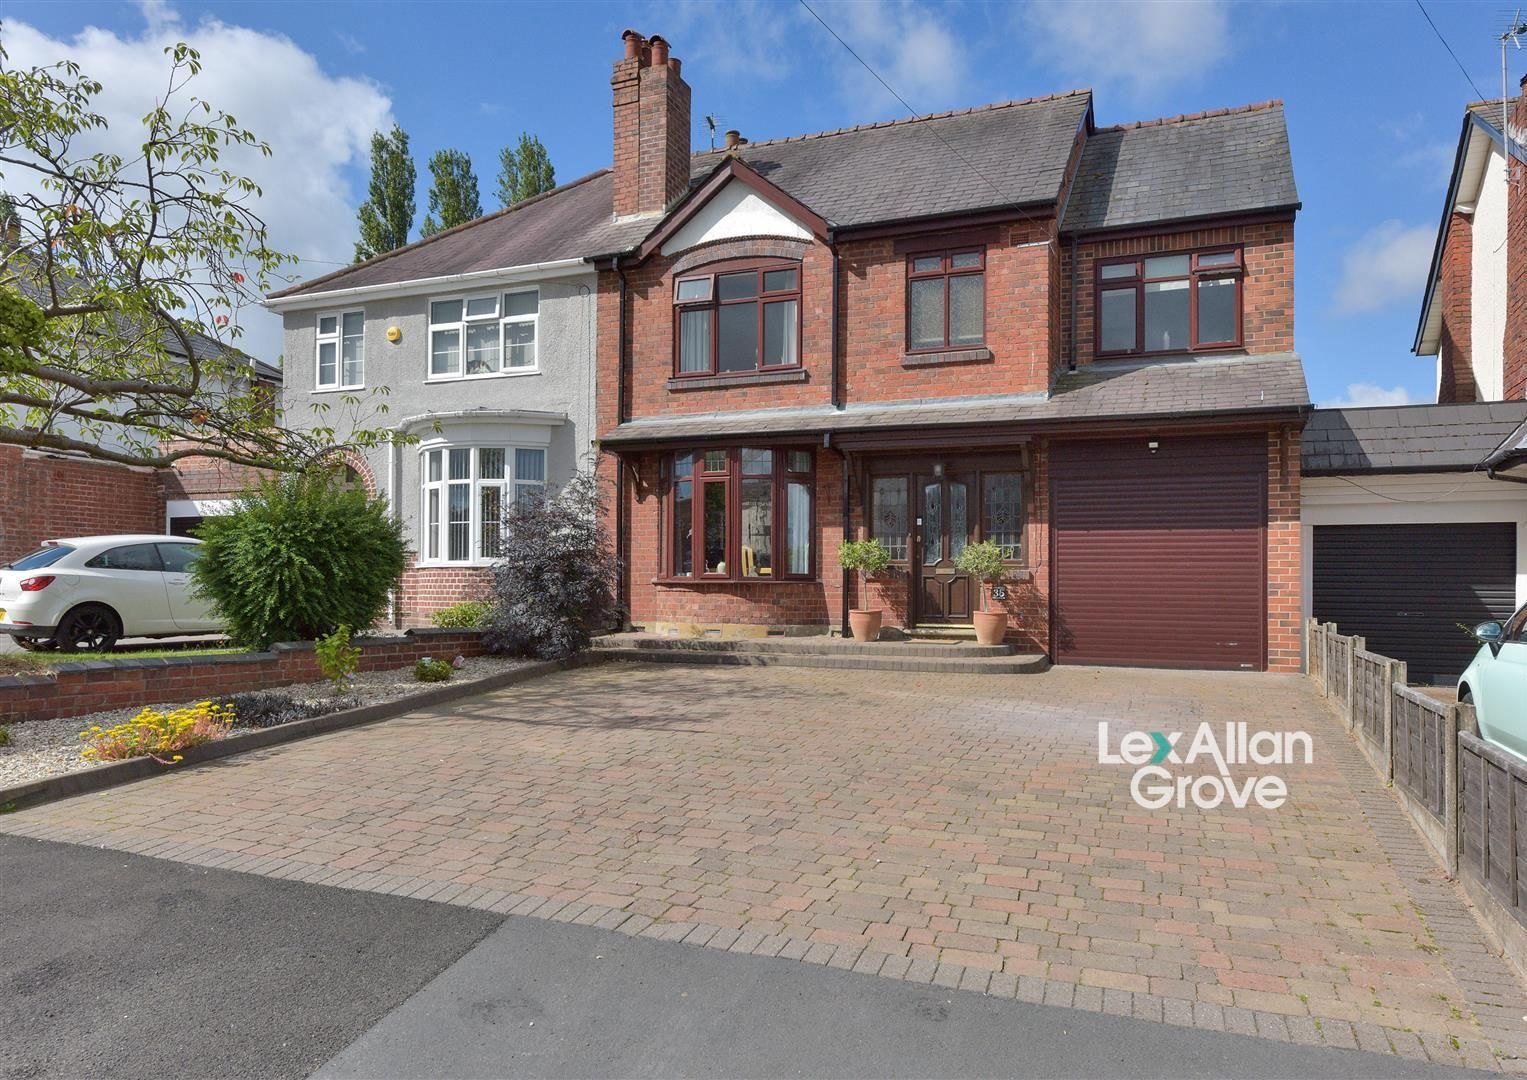 5 bed semi-detached for sale, B62